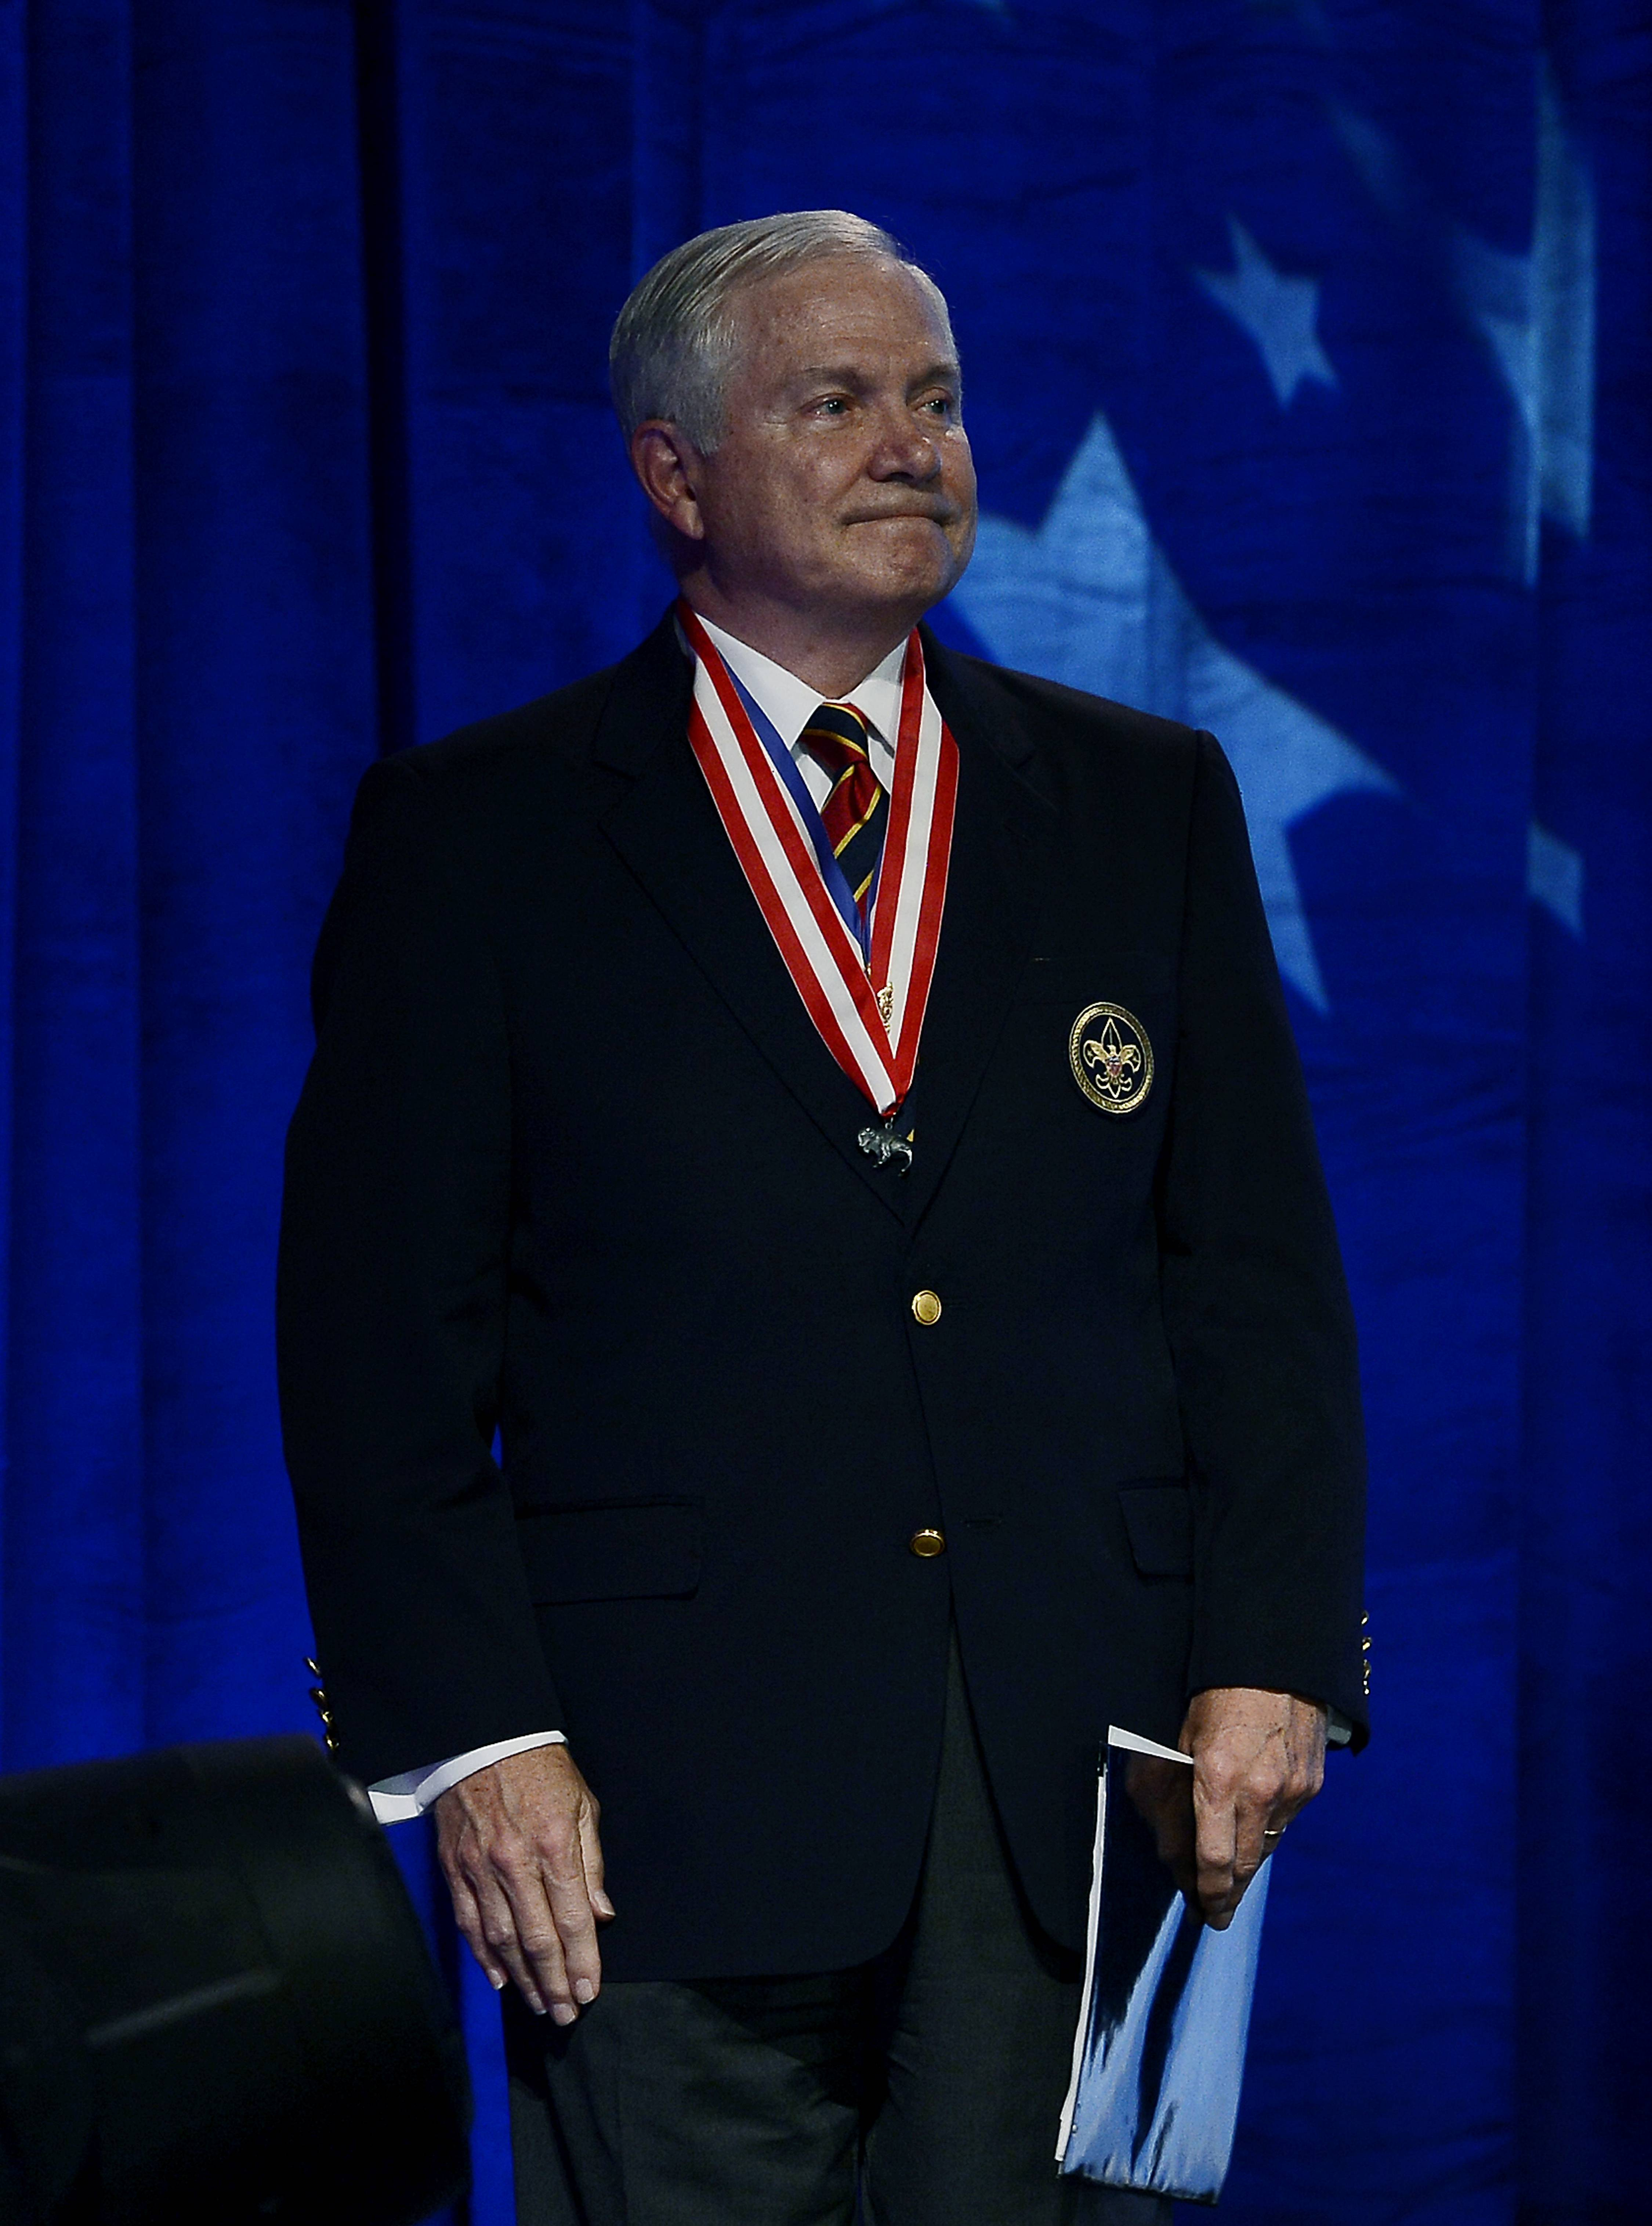 Former Defense Secretary Robert Gates looks at the standing ovation by the audience after addressing the Boy Scouts of America's annual meeting on Friday, May 23, in Nashville, Tenn., after being selected as the organization's new president. Gates is taking over one of the nation's largest youth organizations as it fights a membership decline and debates its policy toward gays.